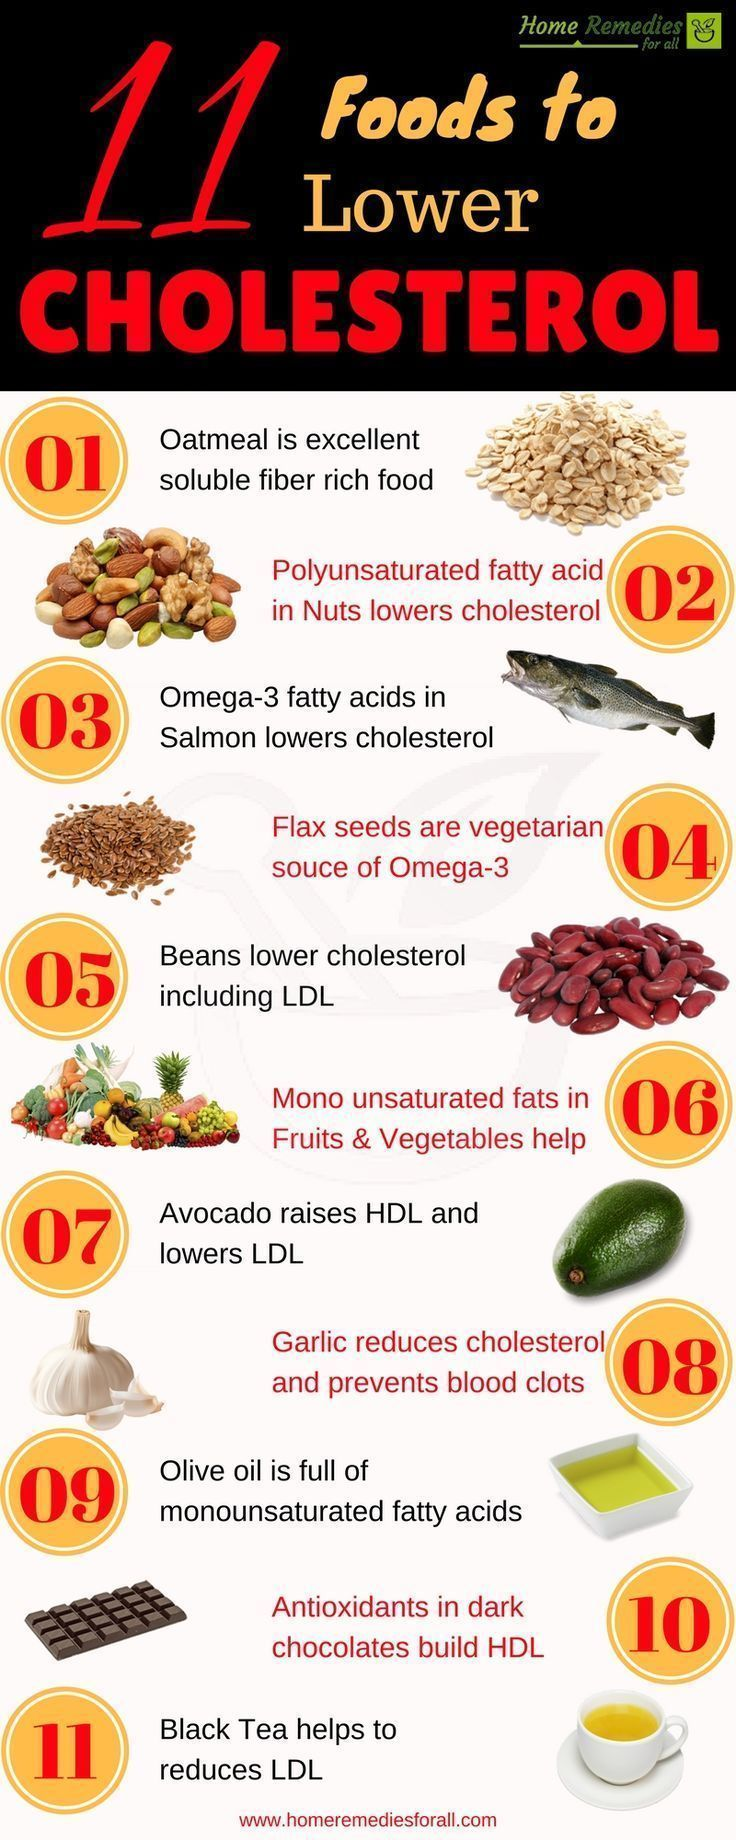 what is a low cholesteral diet?